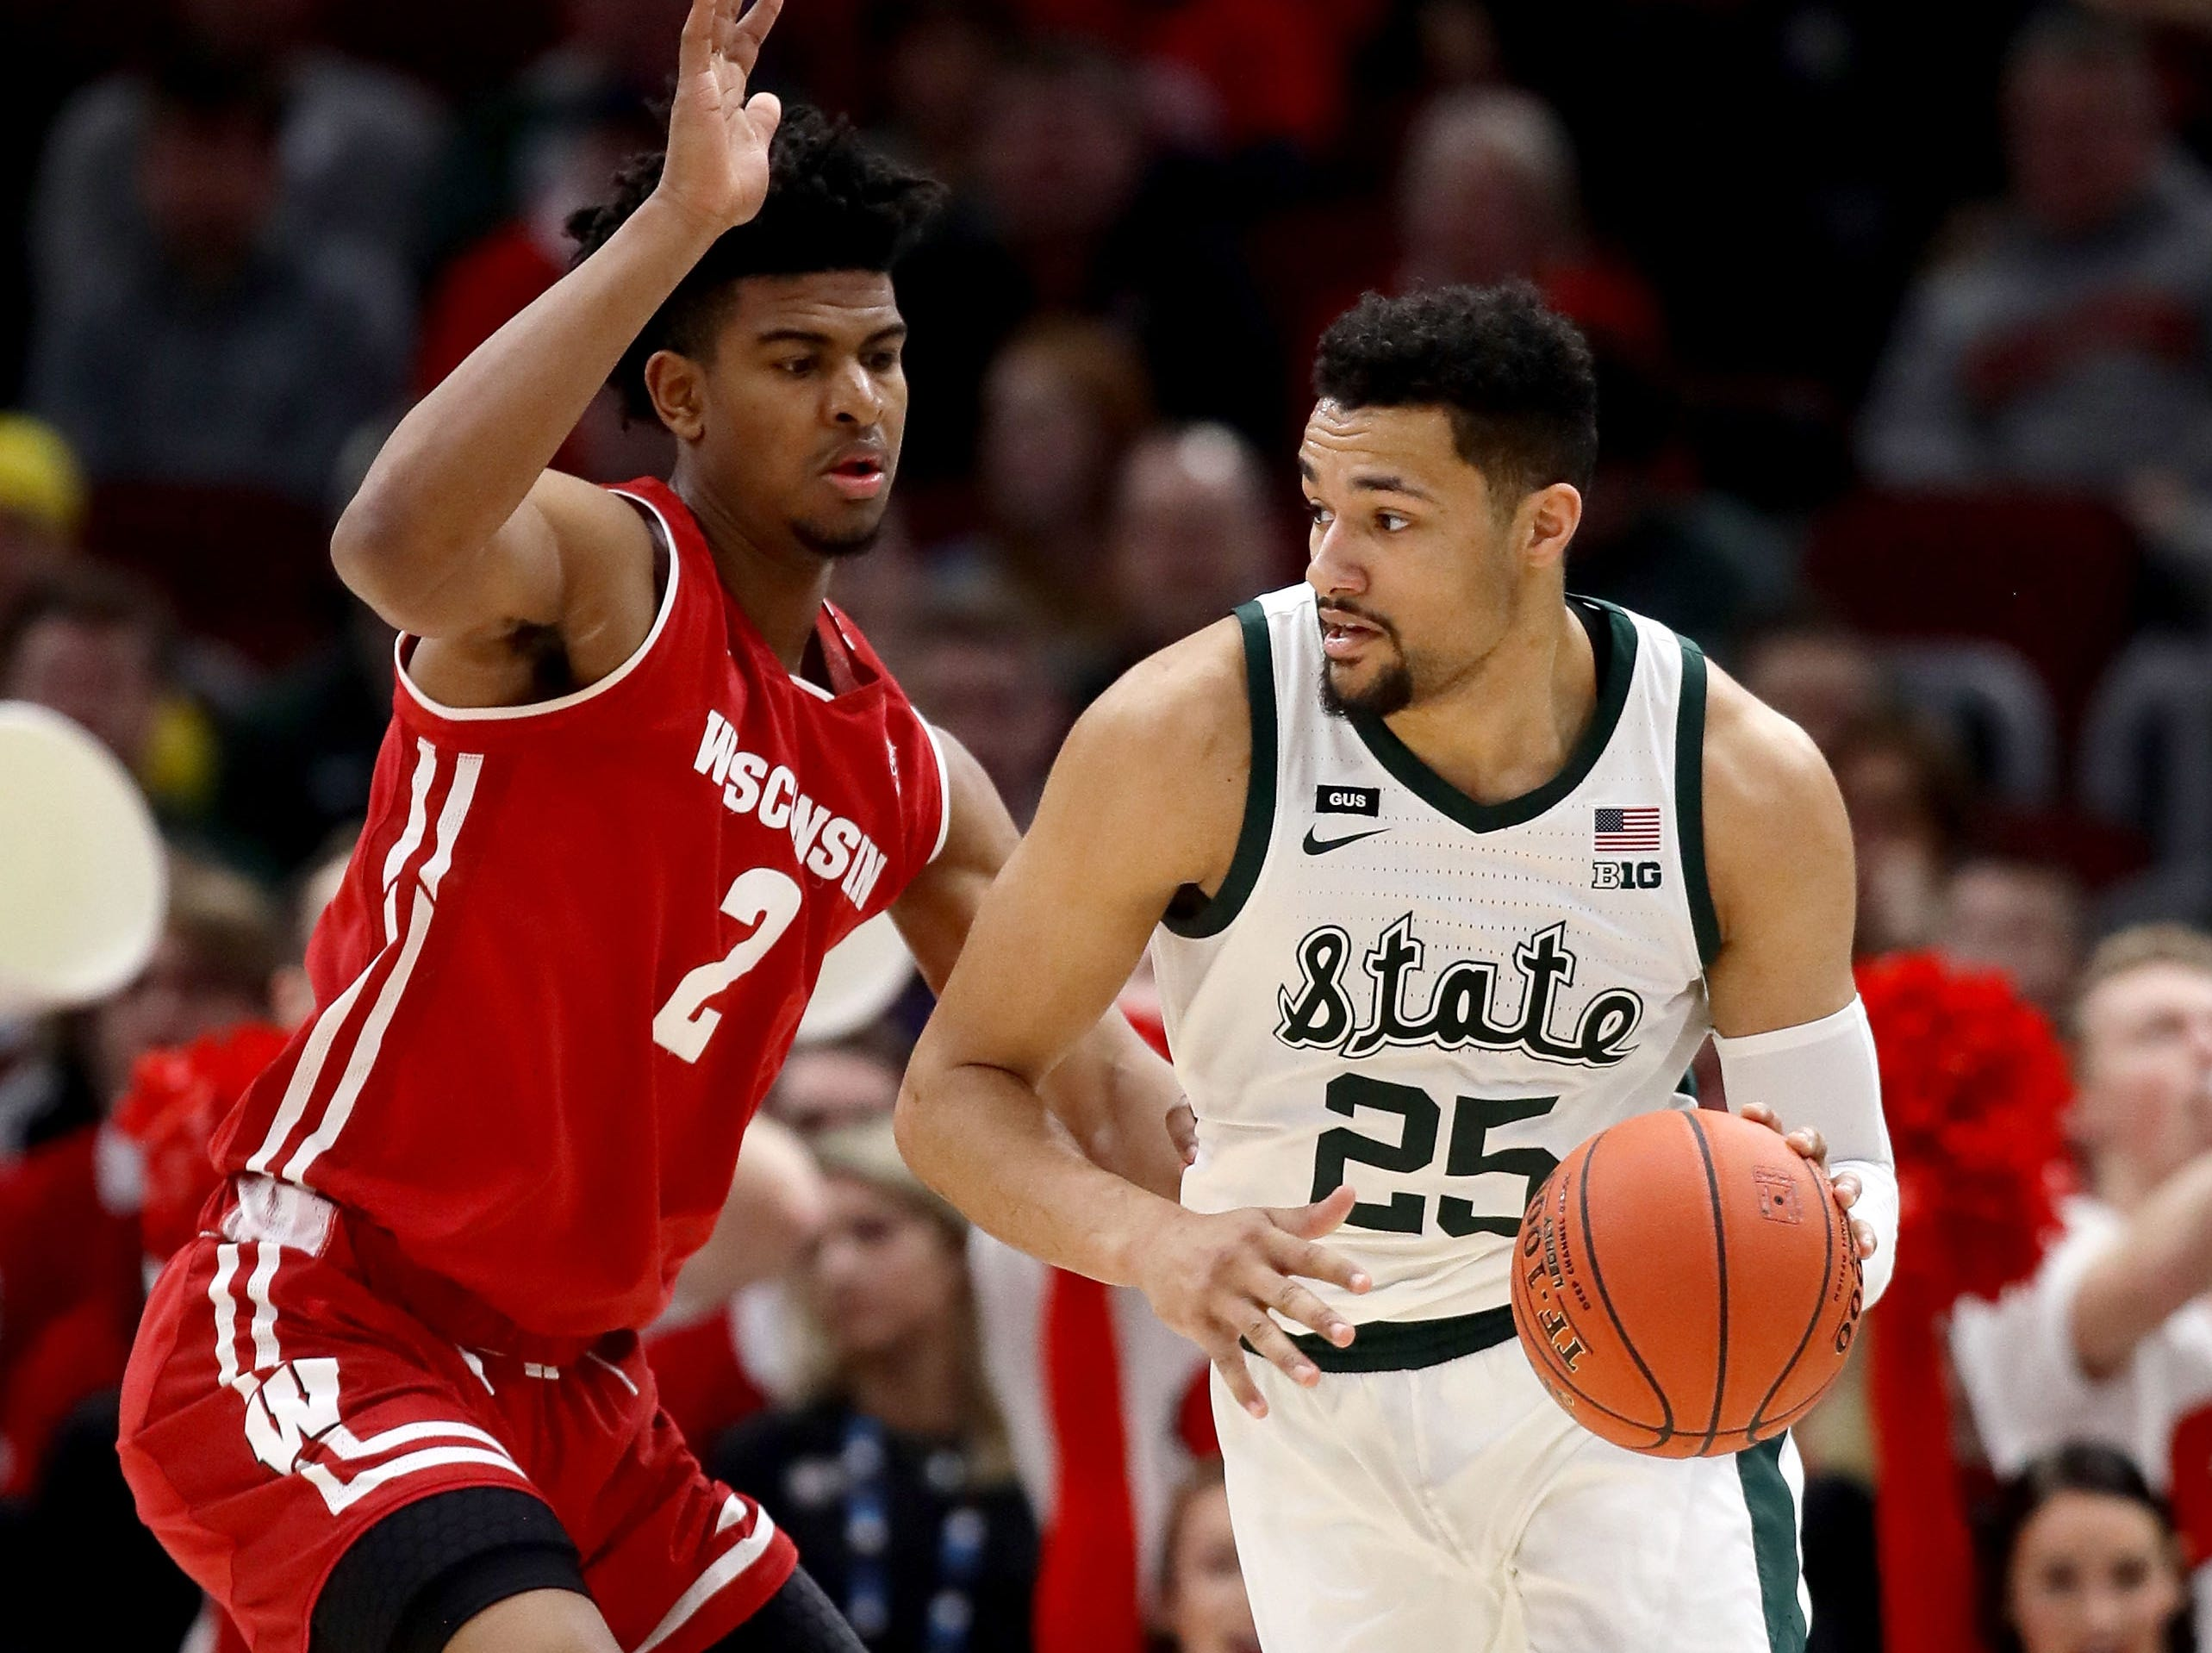 Kenny Goins #25 of the Michigan State Spartans dribbles the ball while being guarded by Aleem Ford #2 of the Wisconsin Badgers in the first half during the semifinals of the Big Ten Basketball Tournament at the United Center on March 16, 2019 in Chicago, Illinois.